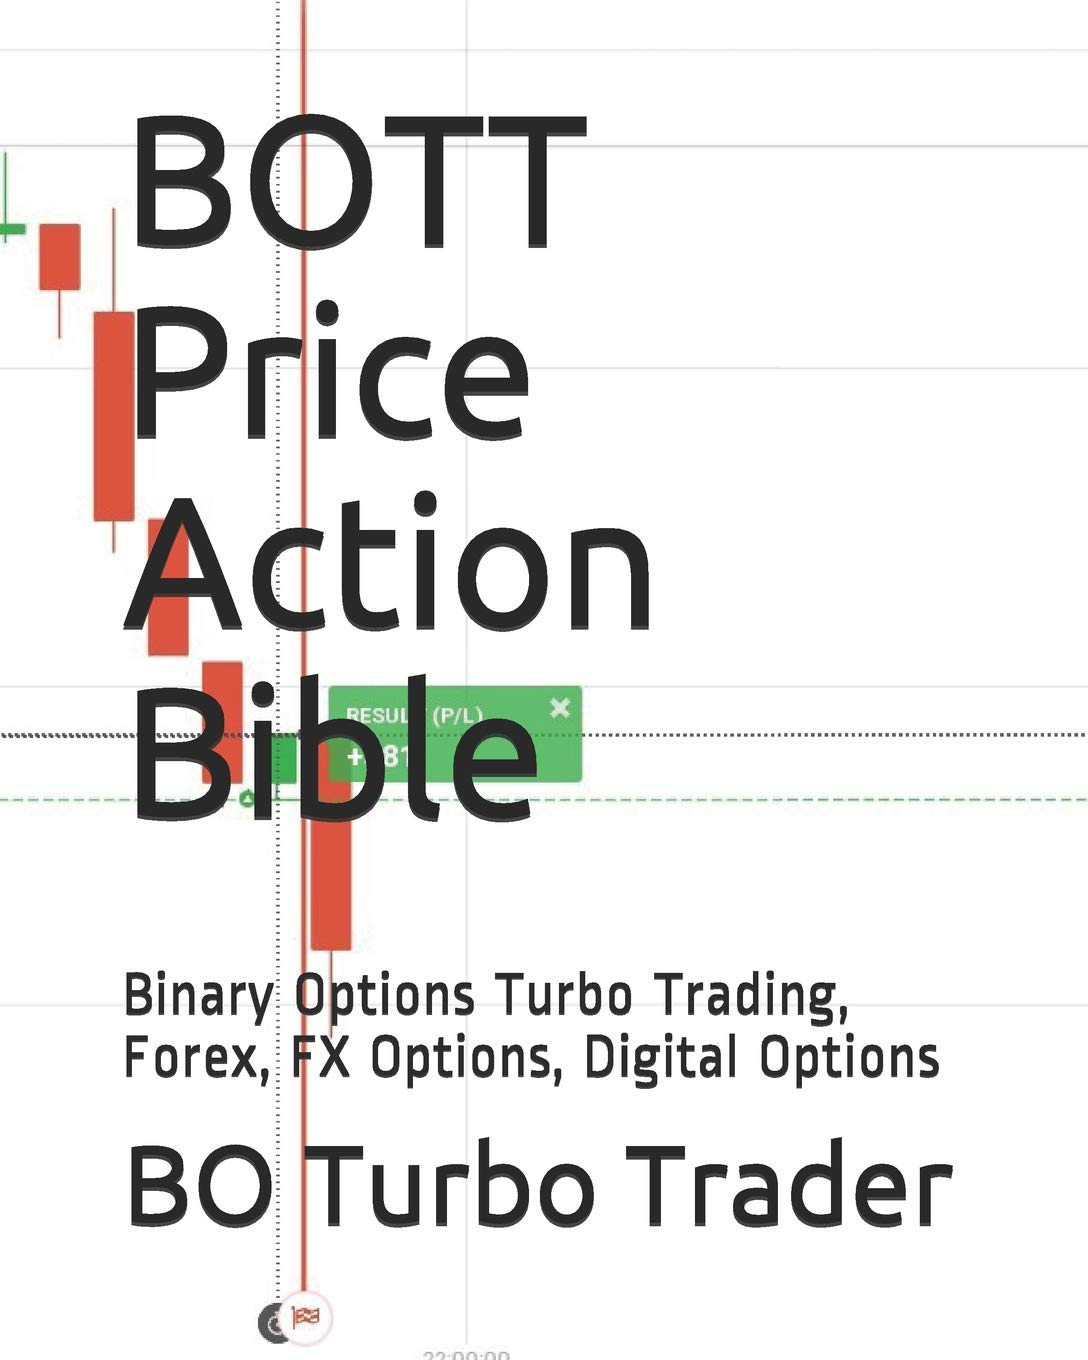 BOTT Price Action Bible: Binary Options Turbo Trading, Forex, FX Options, Digital Options: Amazon.es: BO Turbo Trader: Libros en idiomas extranjeros